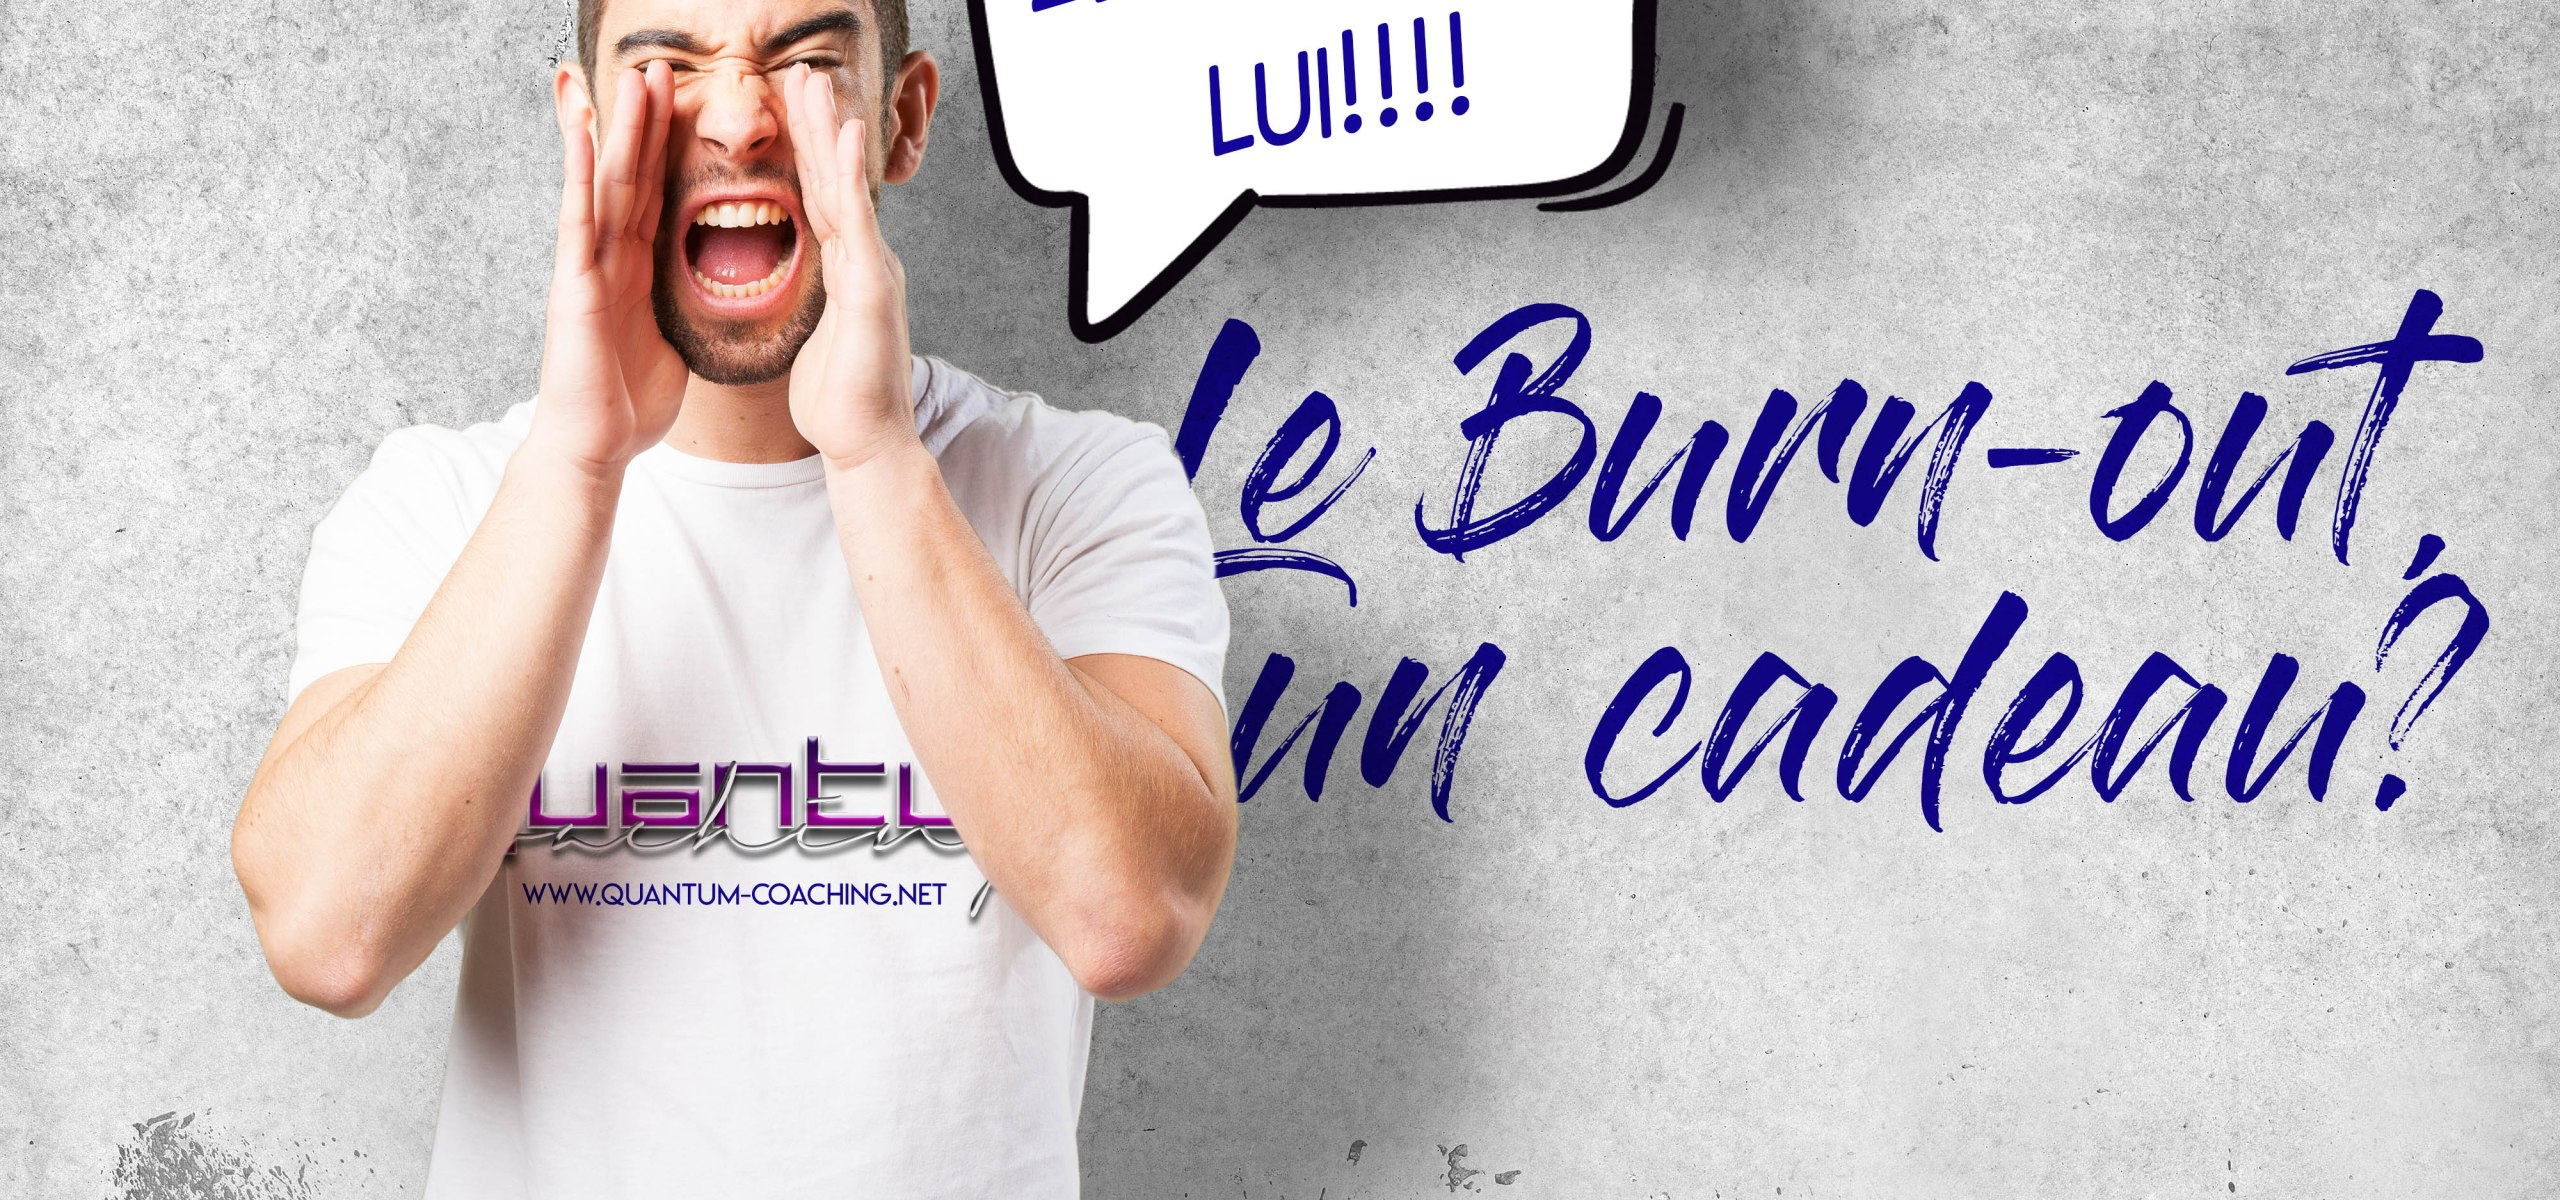 Le Burn-out, un Cadeau? - www.quantum-coaching.net